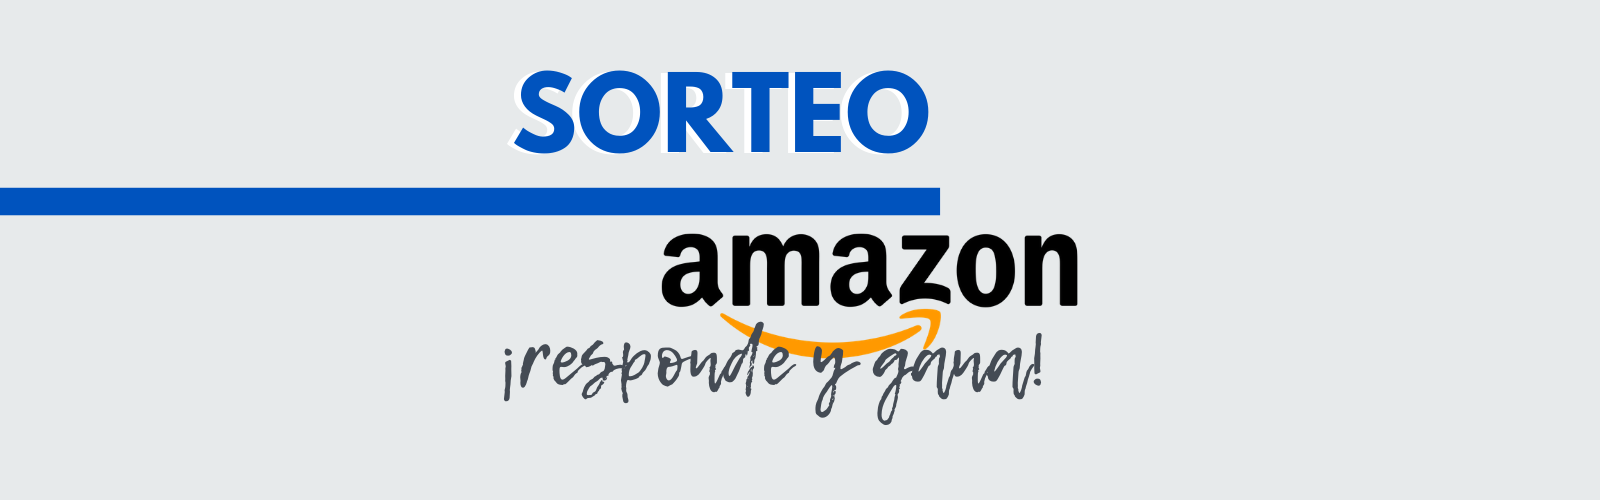 SORTEAMOS UN CHEQUE REGALO 30€ EN AMAZON